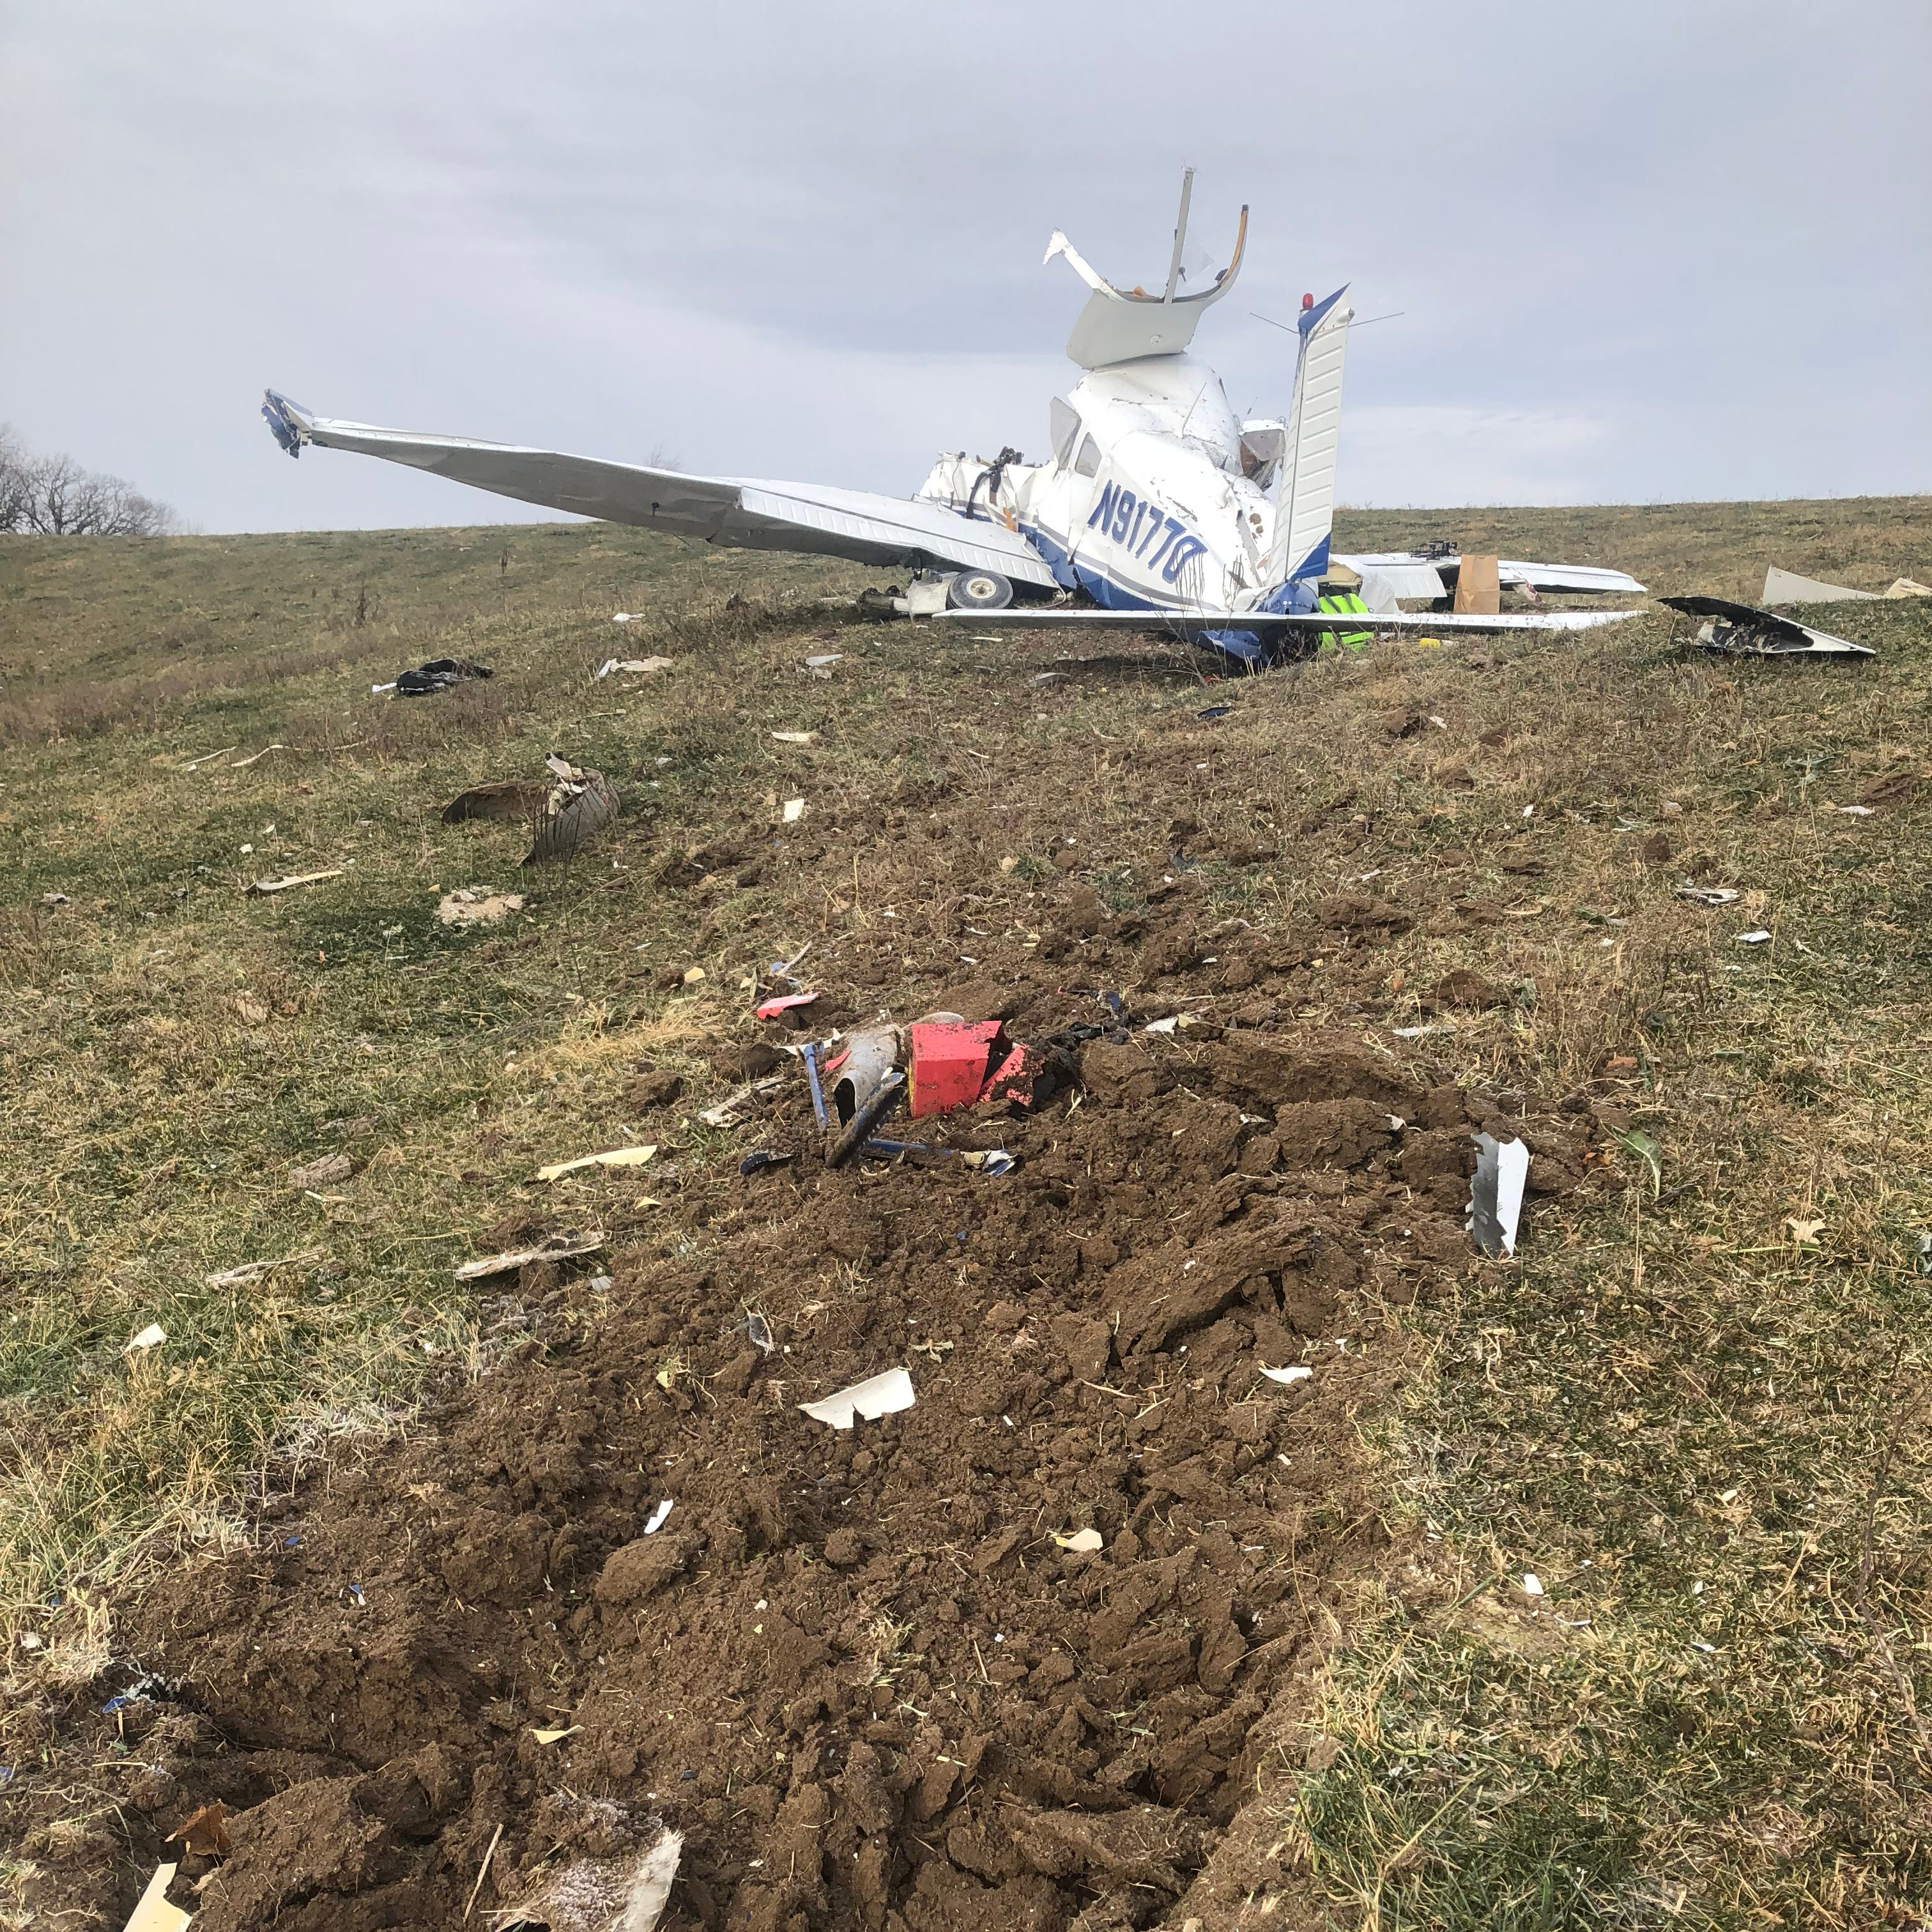 3 of 4 Iowans killed in plane crash were related; pilot 'loved flying,' pastor says